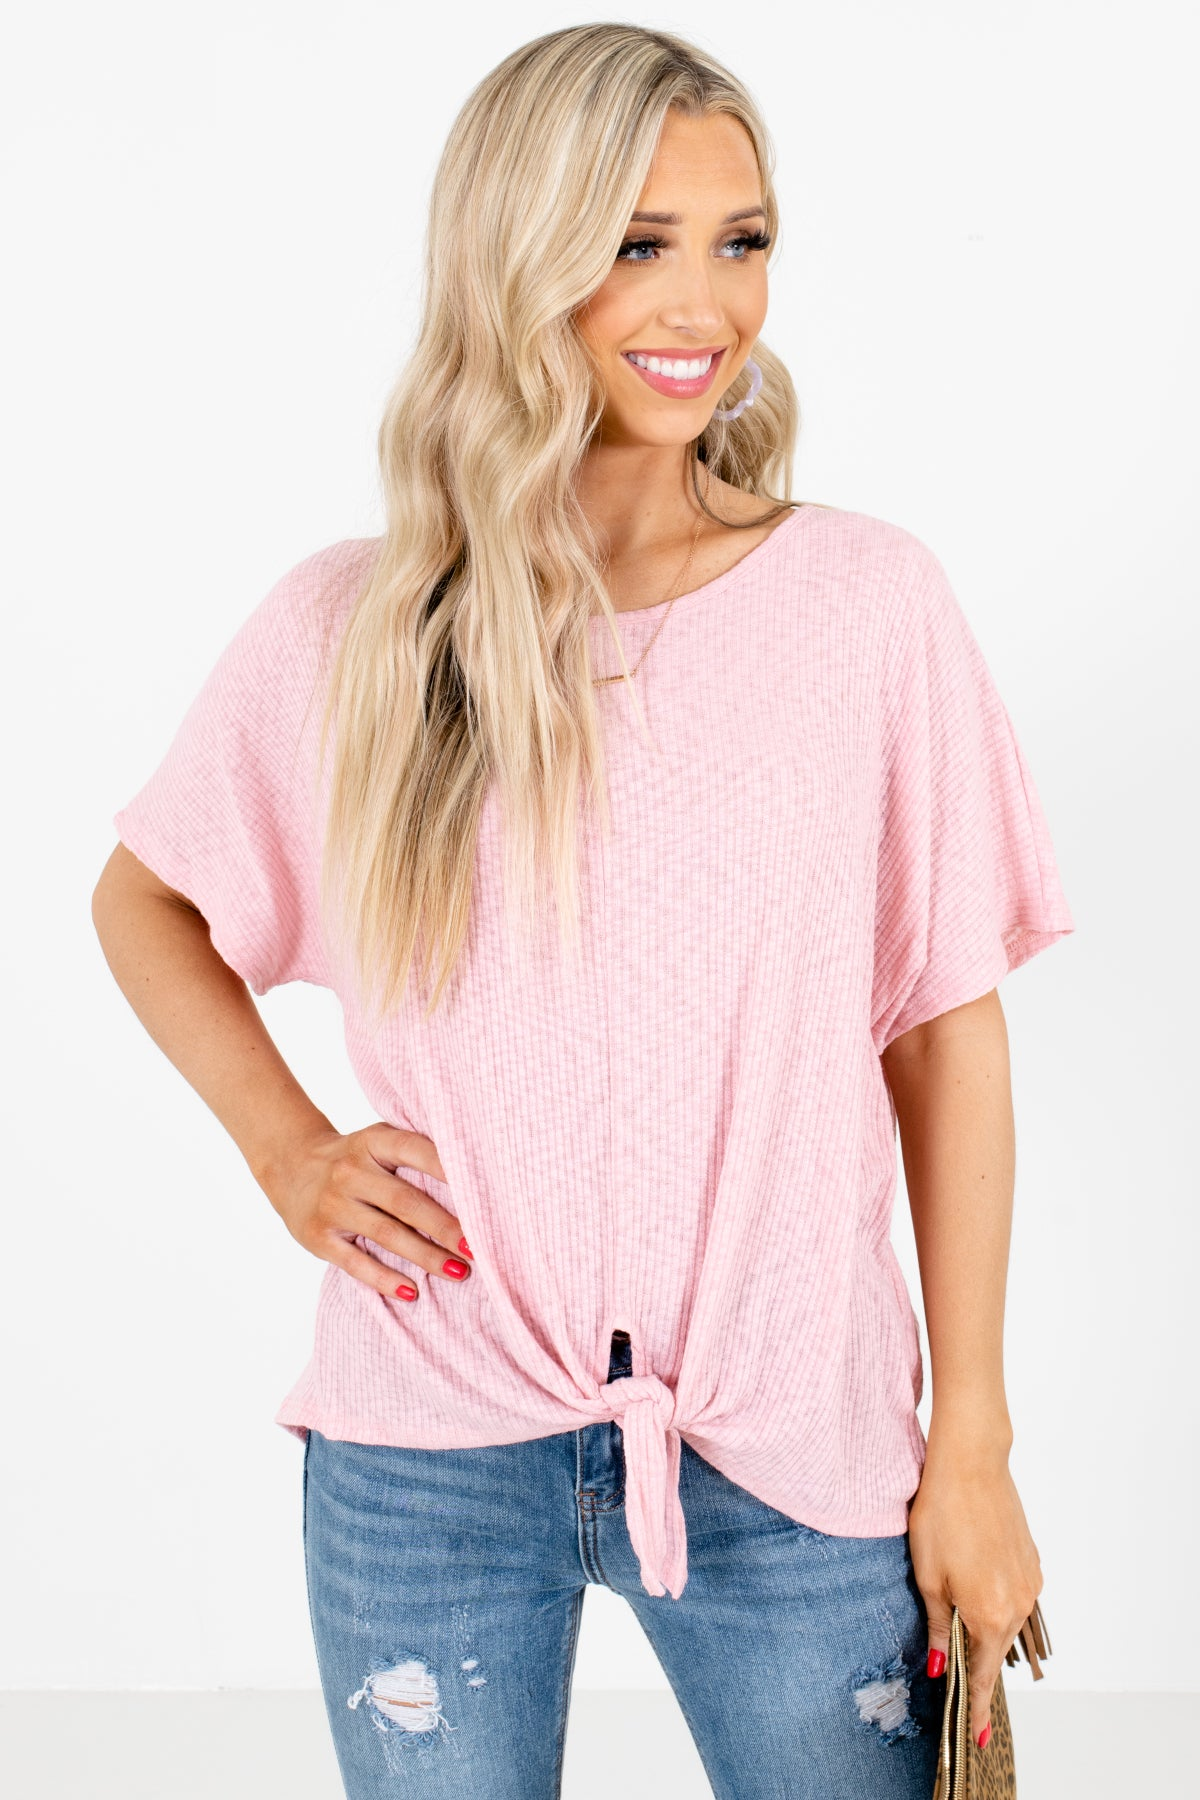 Pink Tie Front Detailed Boutique Tops for Women